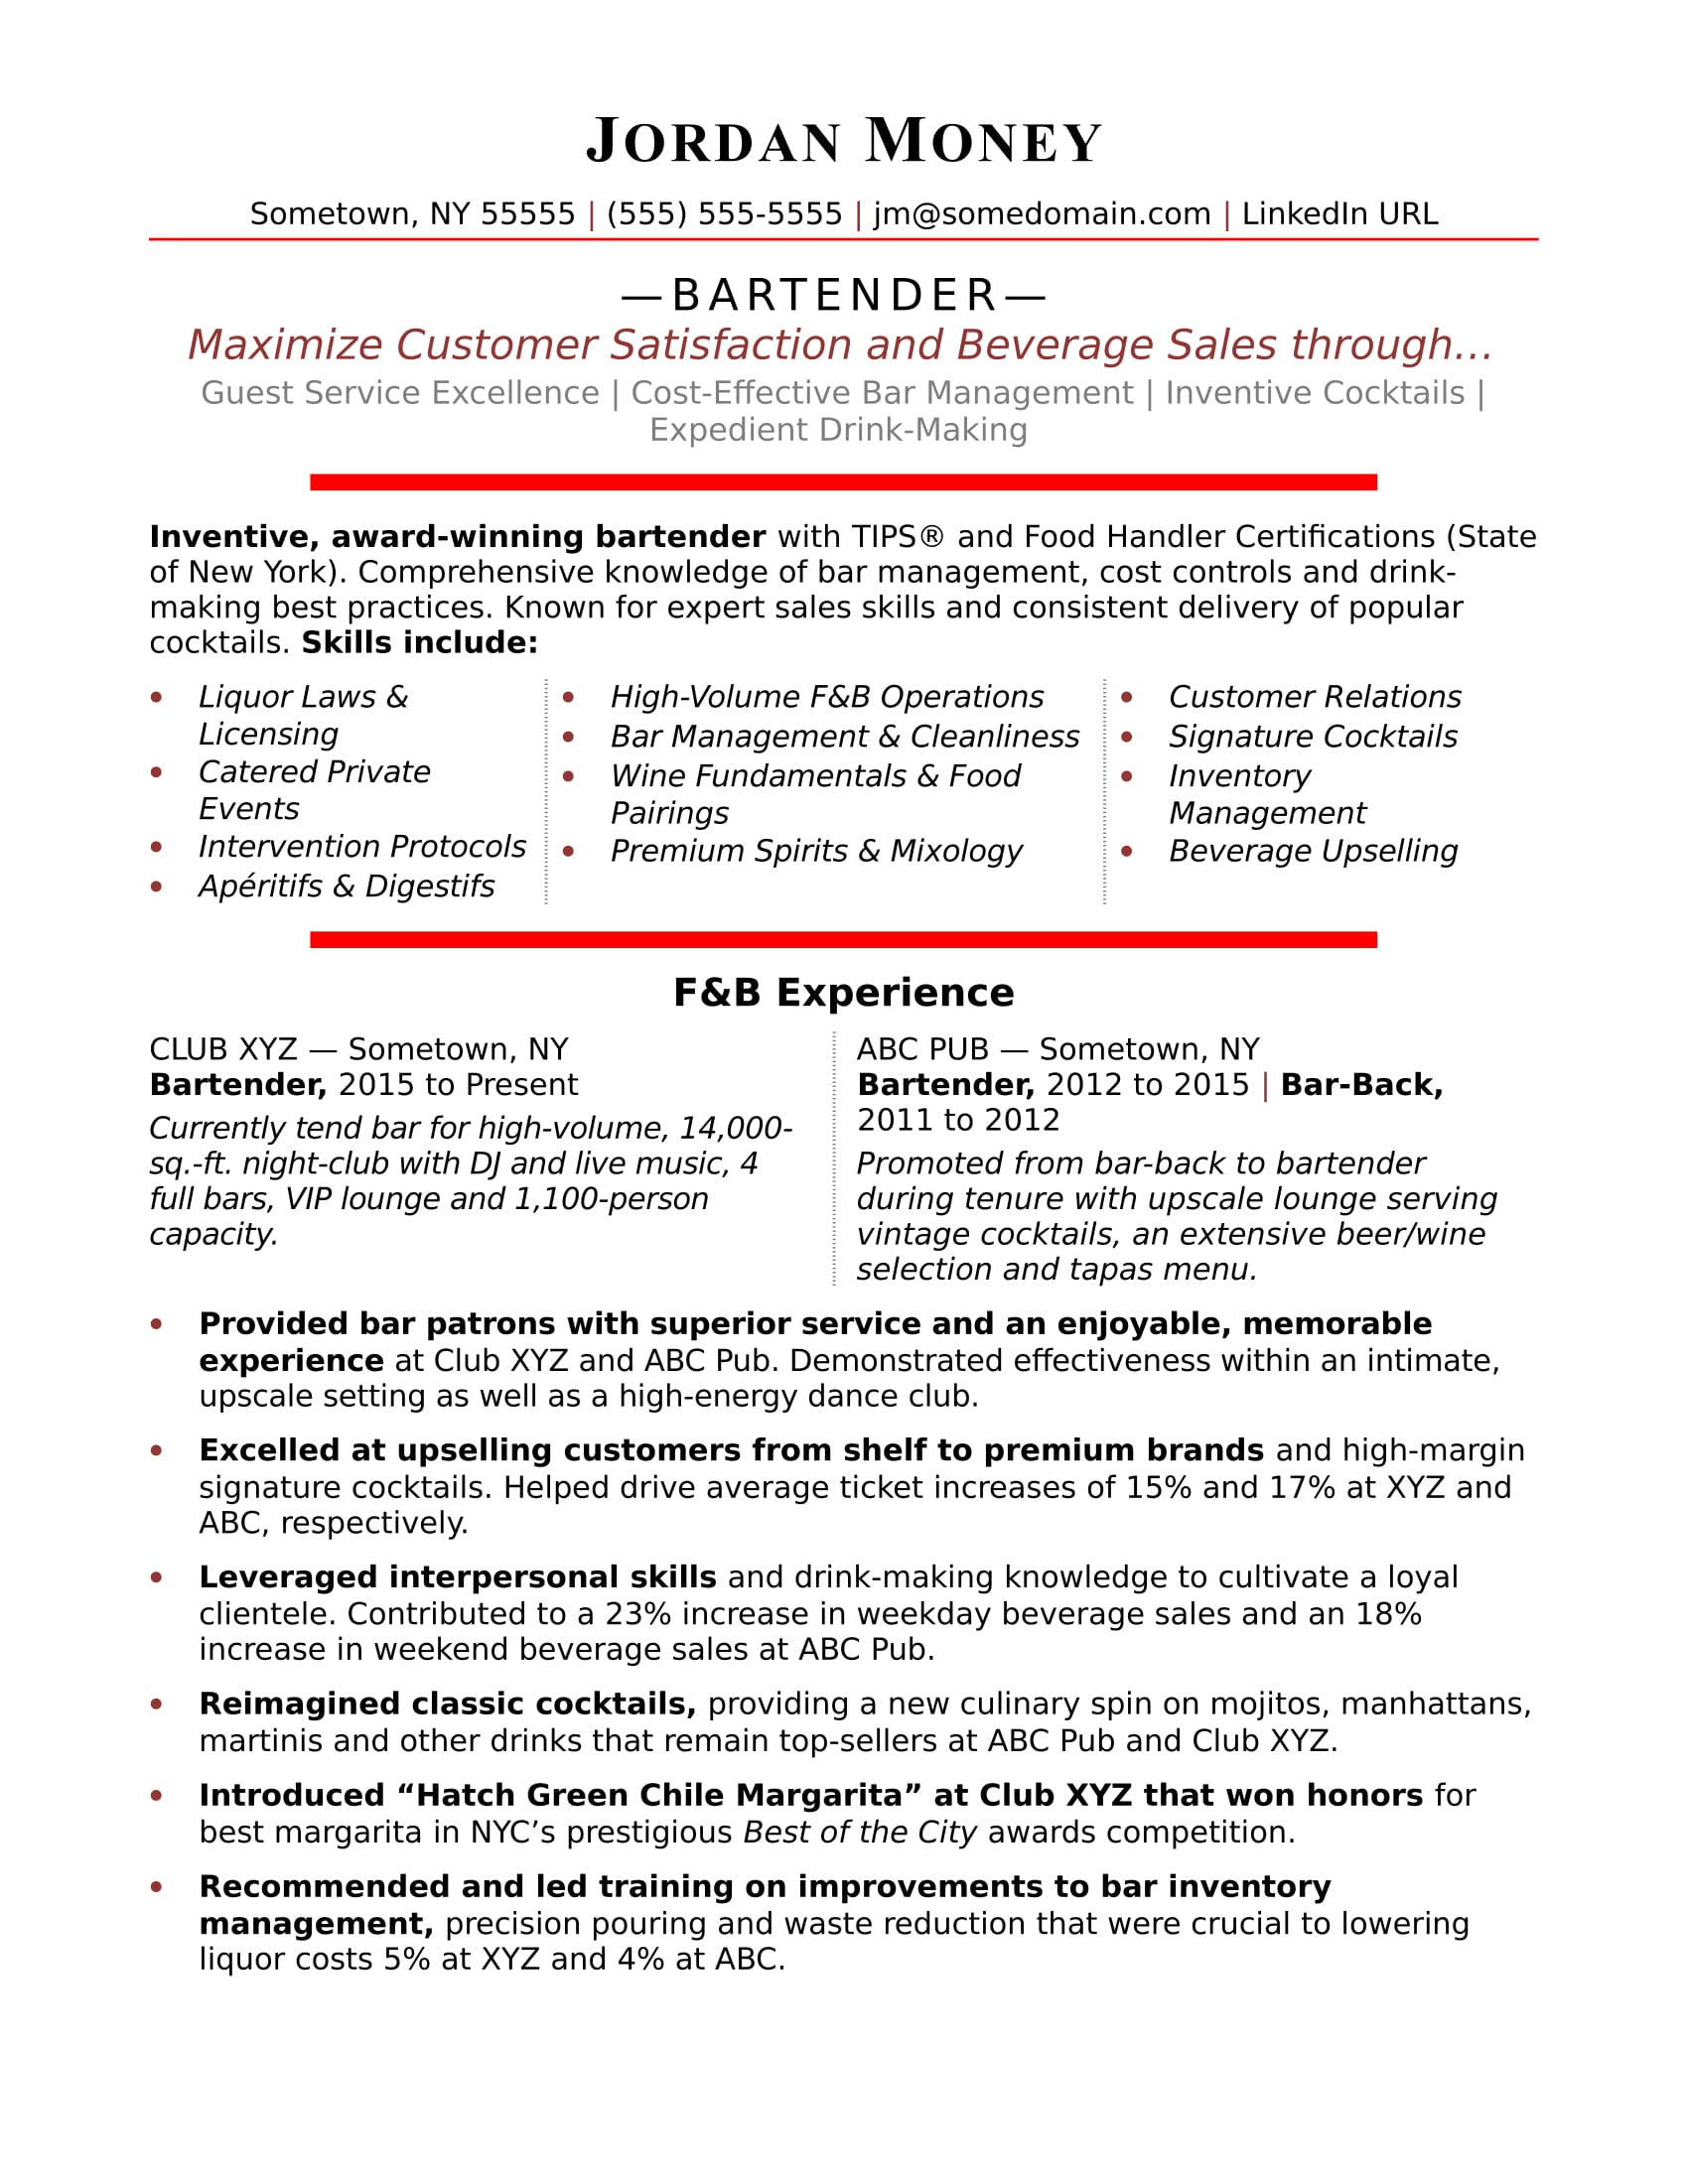 Attractive Bartender Resume Sample Pertaining To Bar Tender Resume